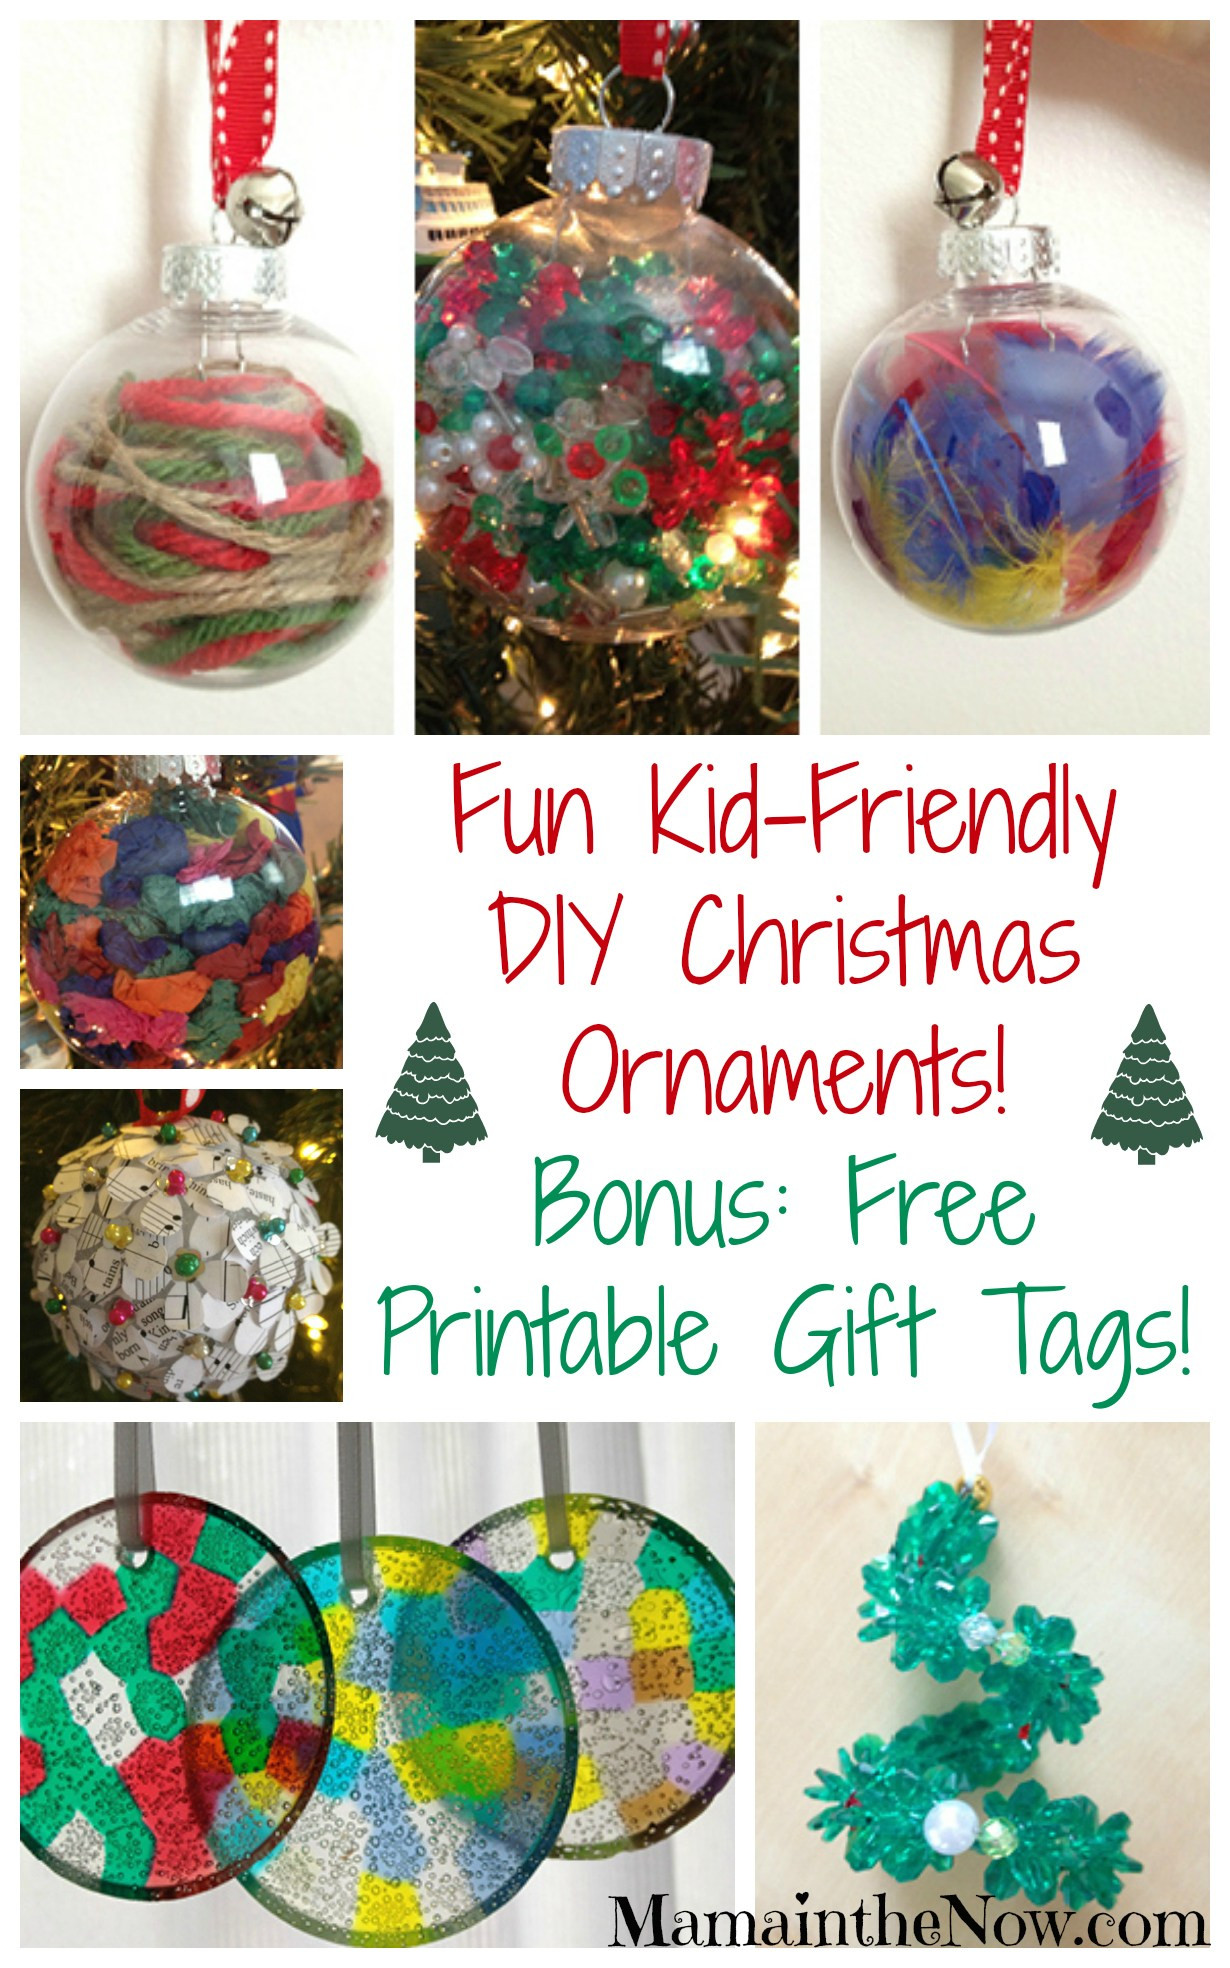 Best ideas about DIY Kids Christmas Ornaments . Save or Pin Easy Kid Friendly DIY Christmas Ornaments Now.